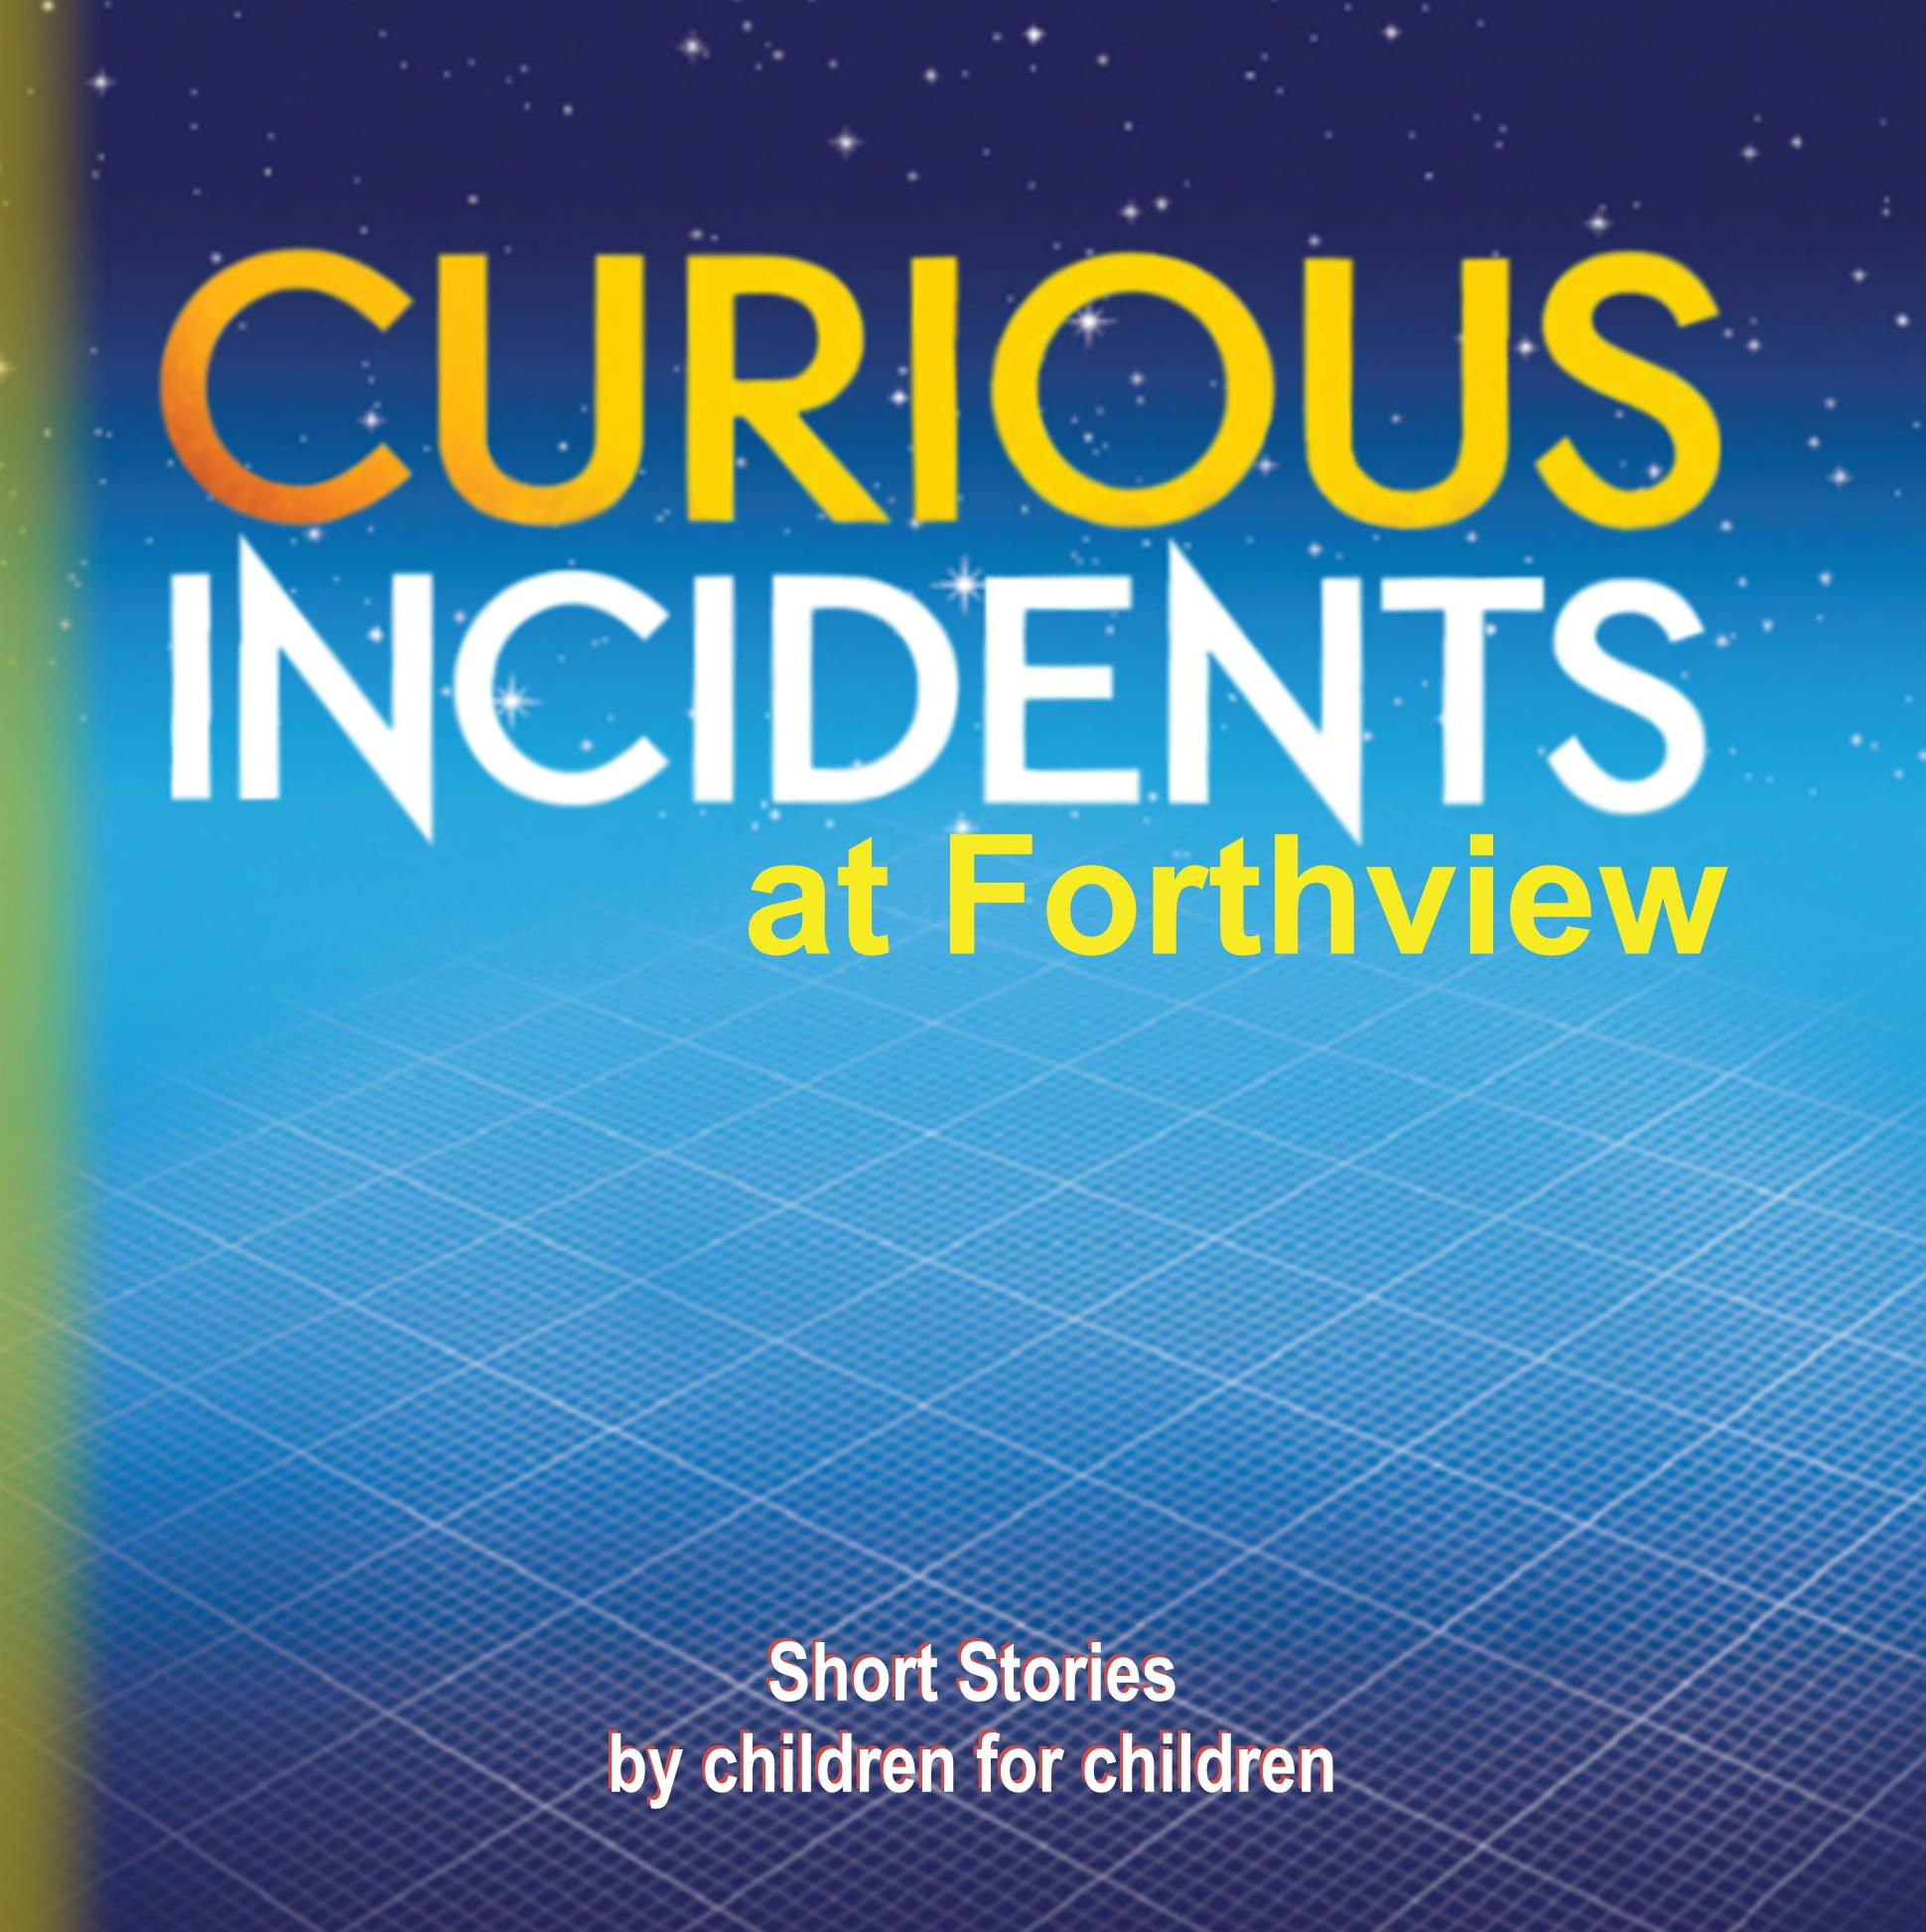 Curious Incidents at Forthview